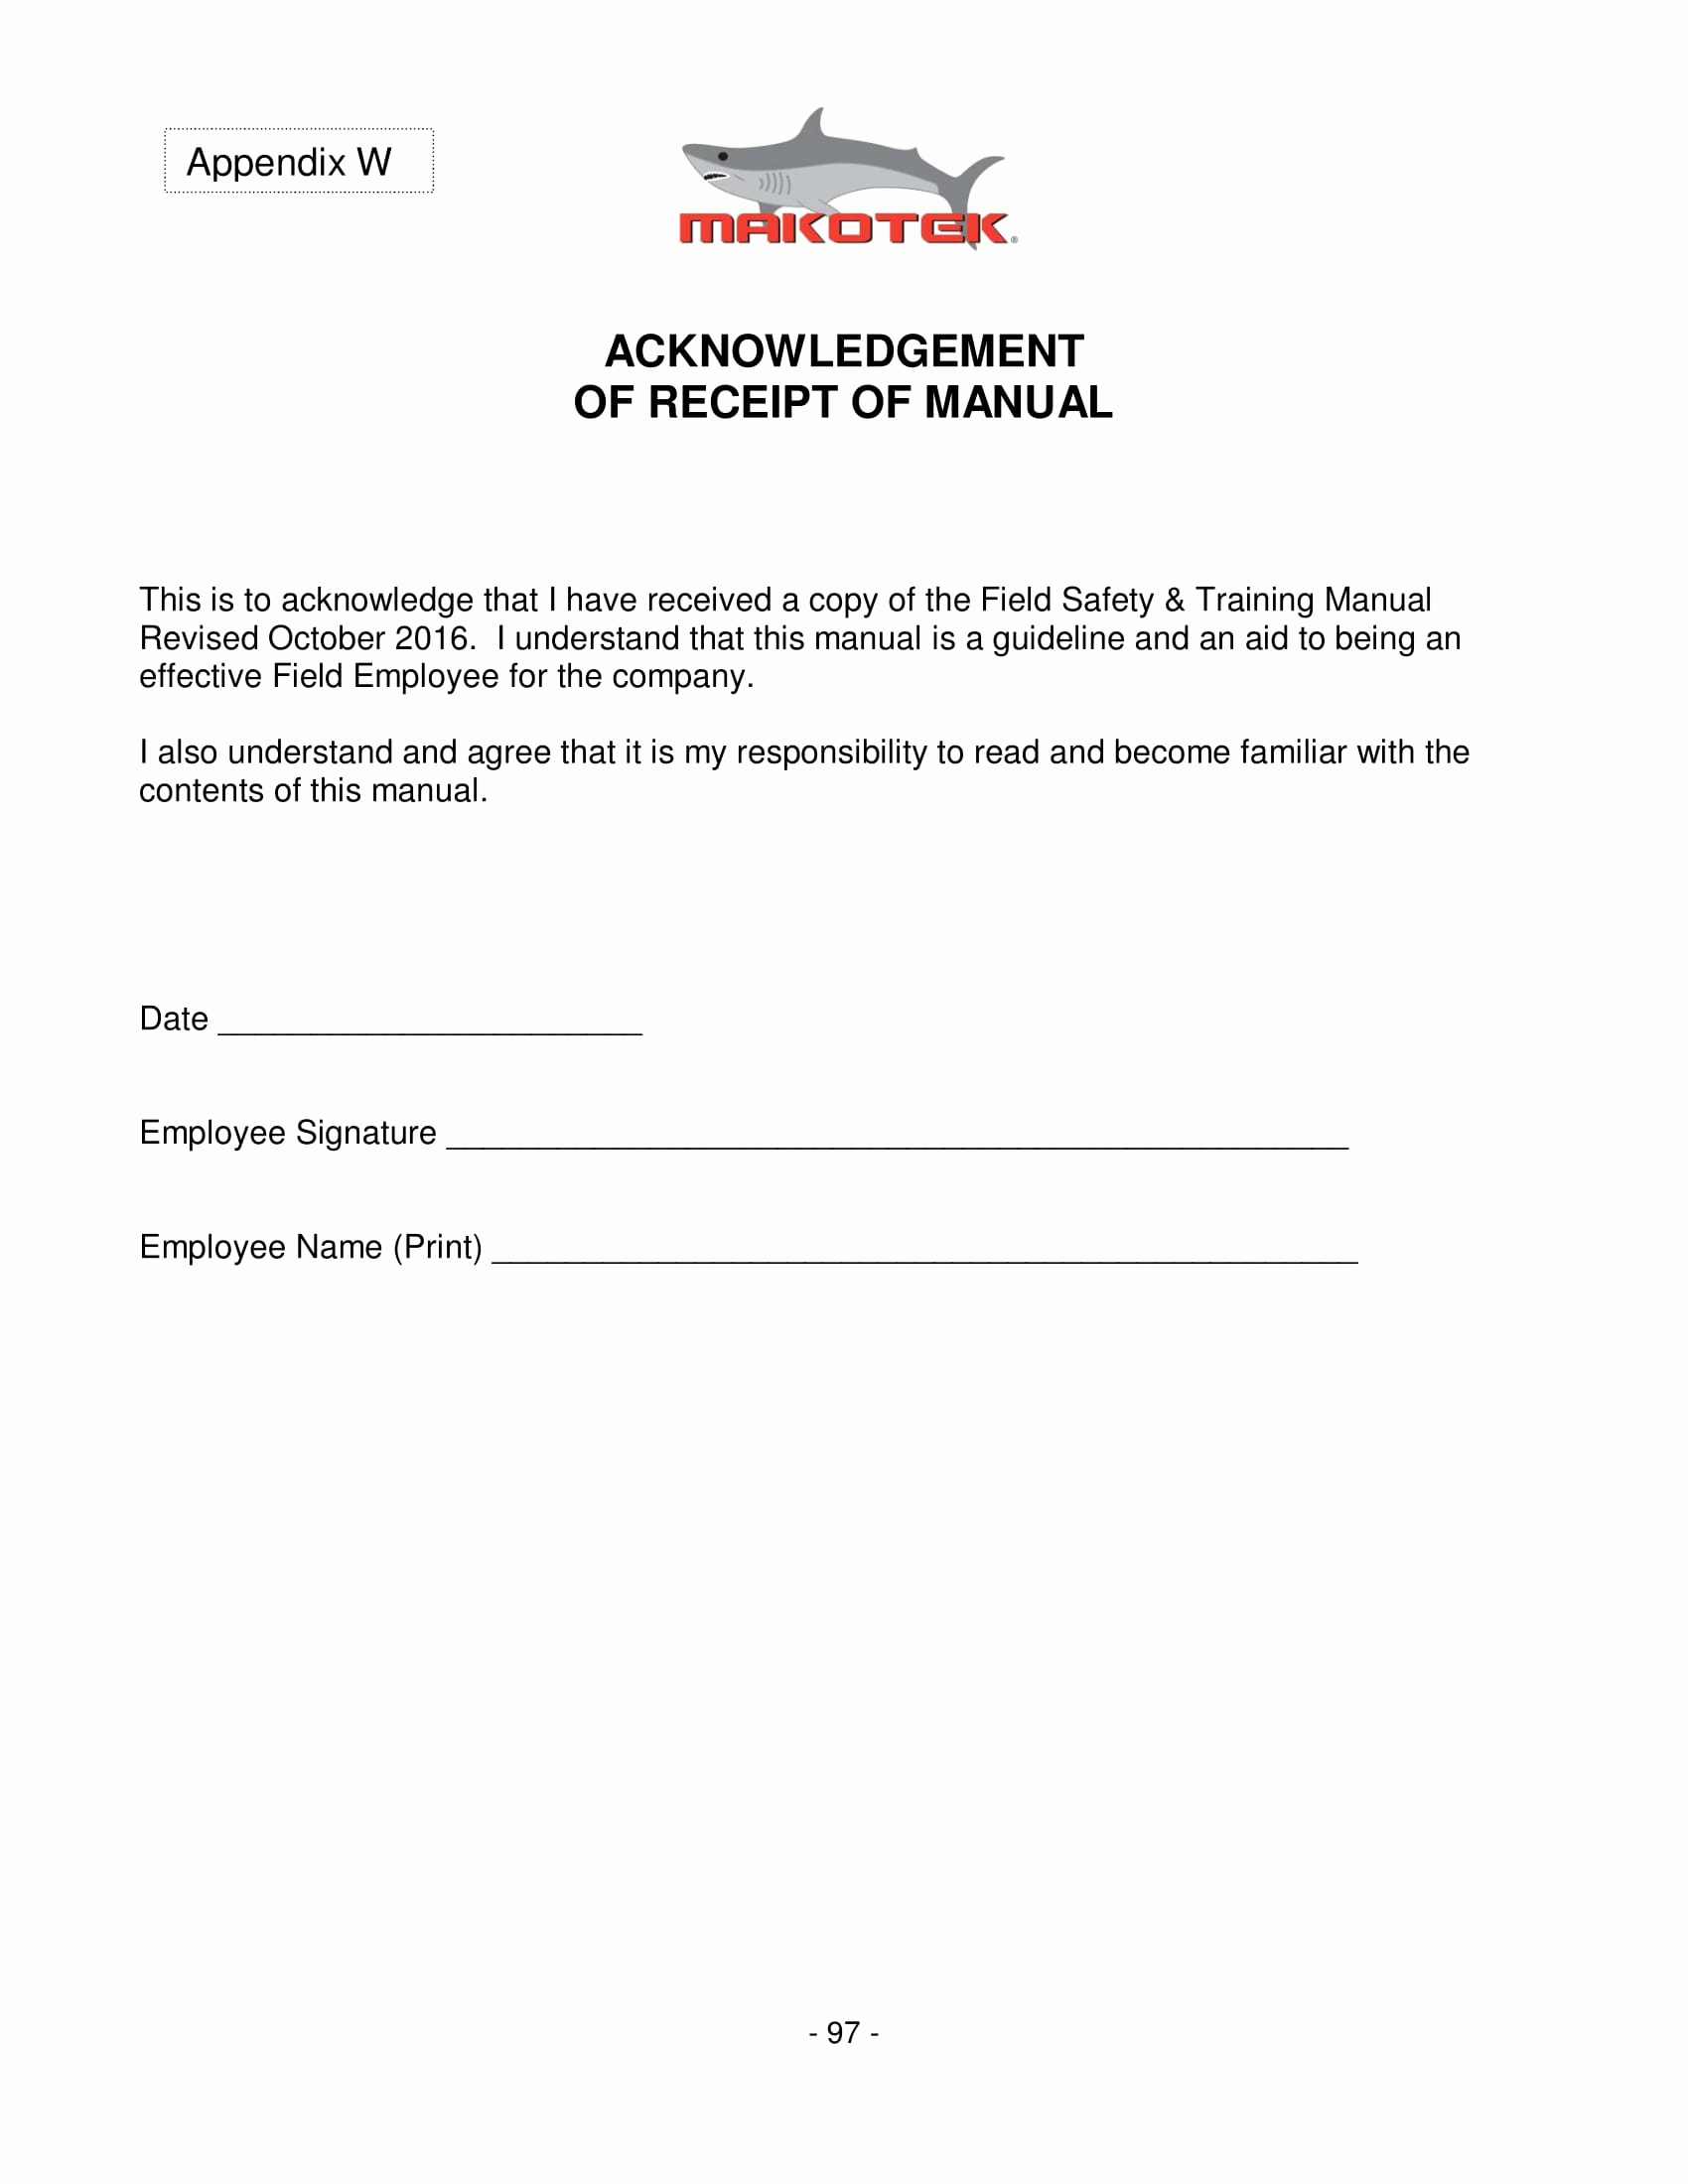 Training Acknowledgement Form Template For 4 Employee Manual Acknowledgment Forms Word Pdf